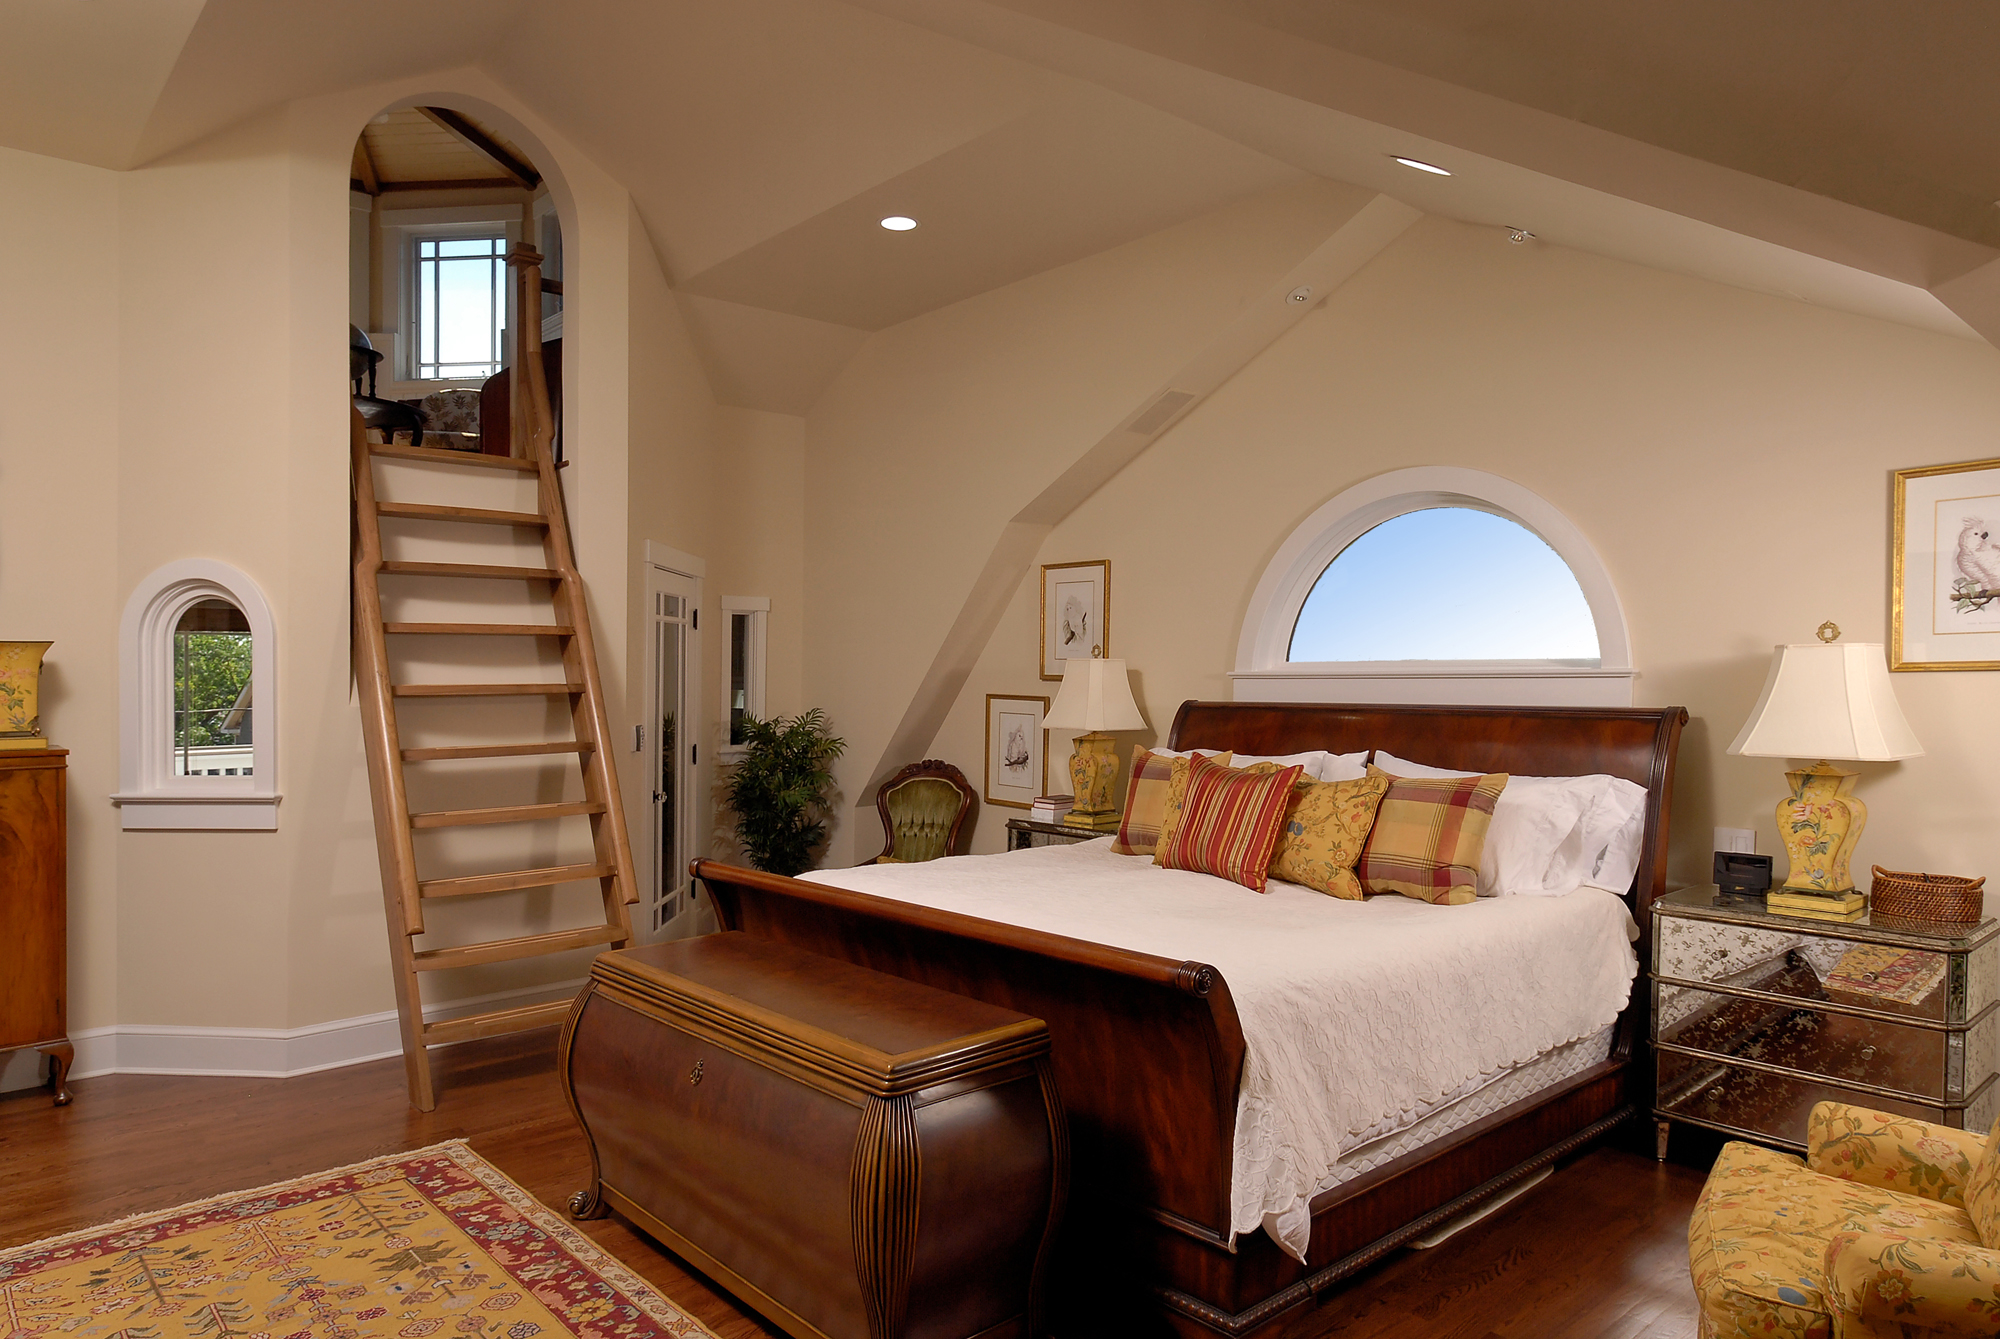 arlington va renovation master bedroom with loft - Master Bedrooms